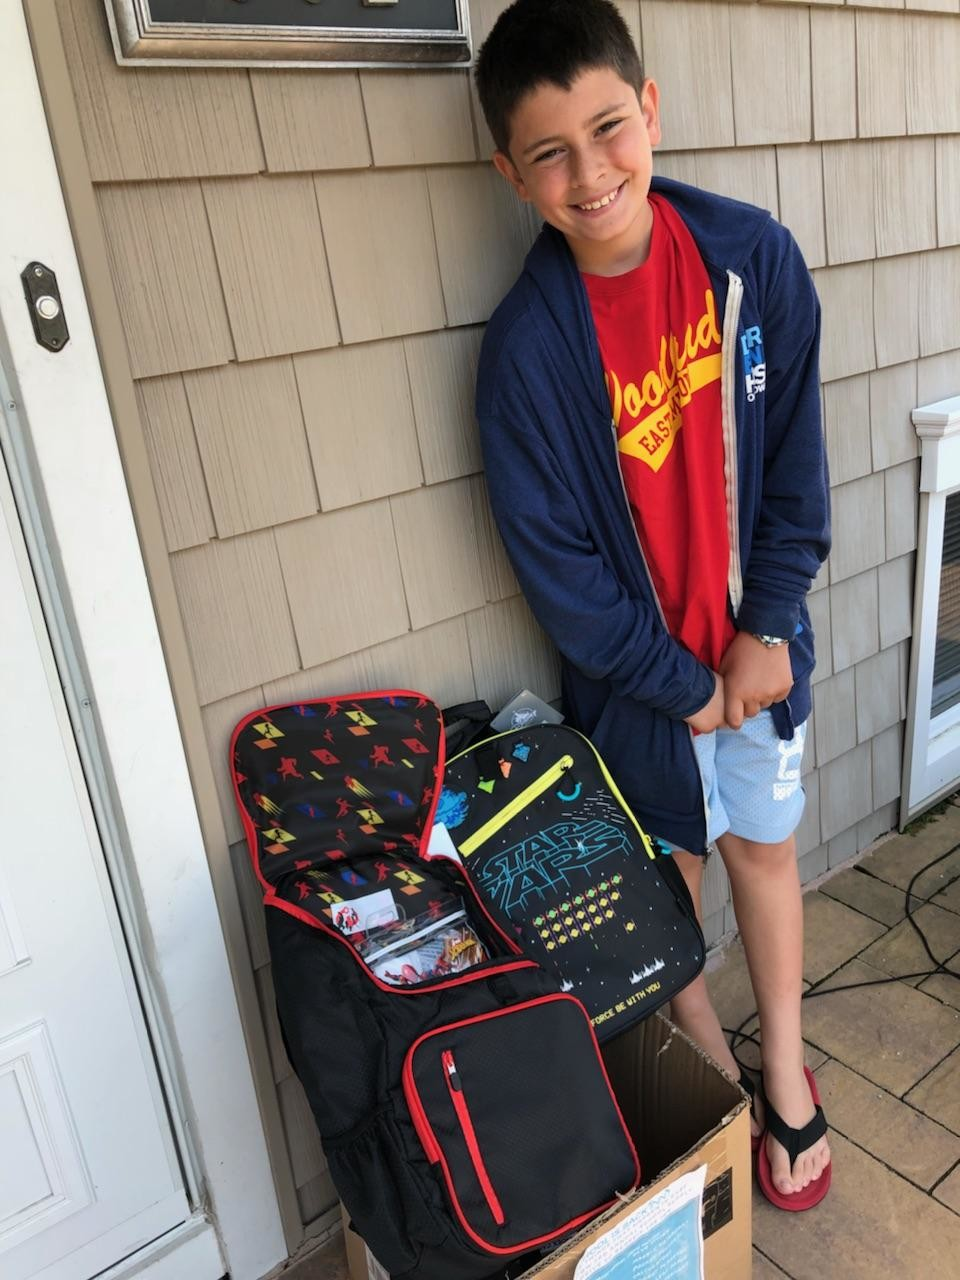 Josh Sobel, a sixth-grade student at Woodland Middle School, was eager to collect school supplies for children in need.